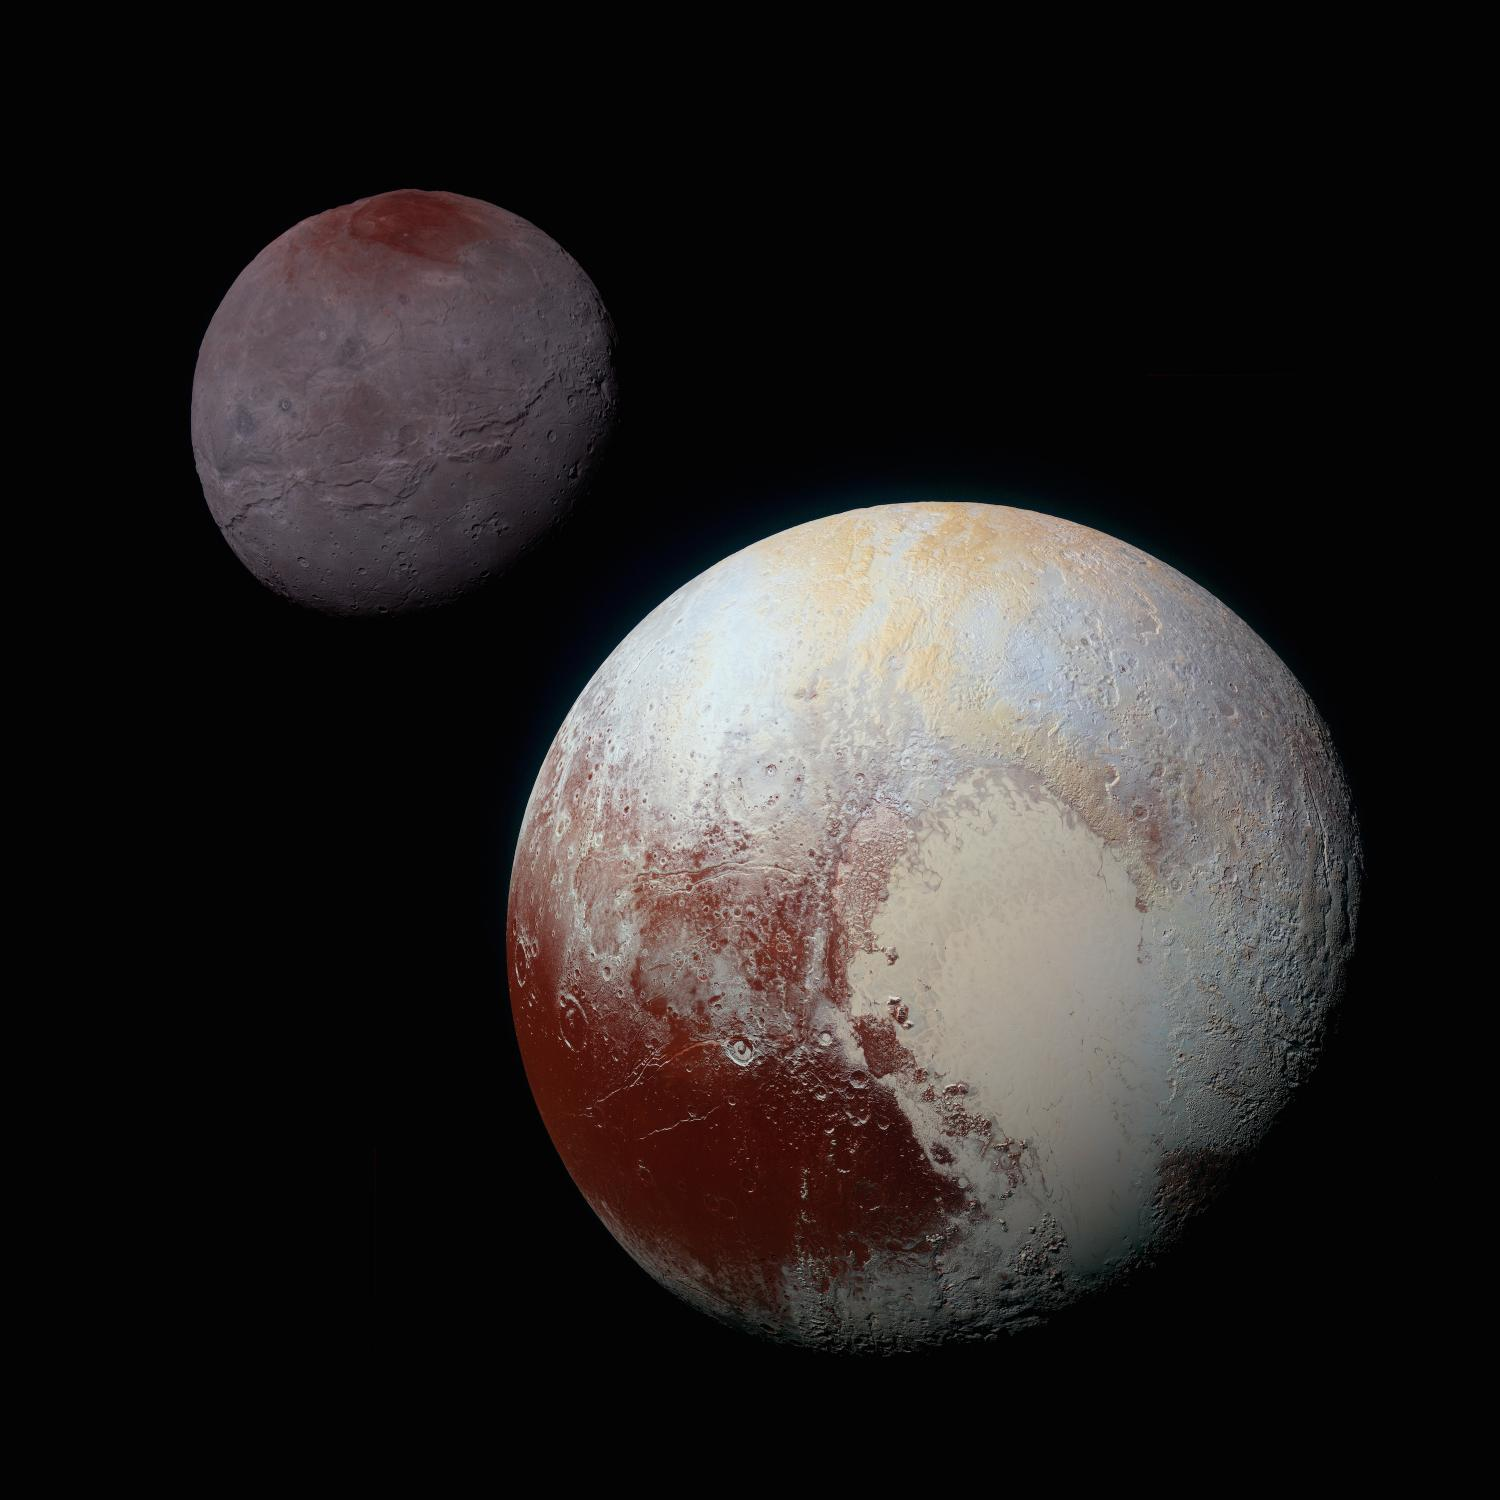 Modeling offers new perspective on how Pluto's 'icy heart' came to be